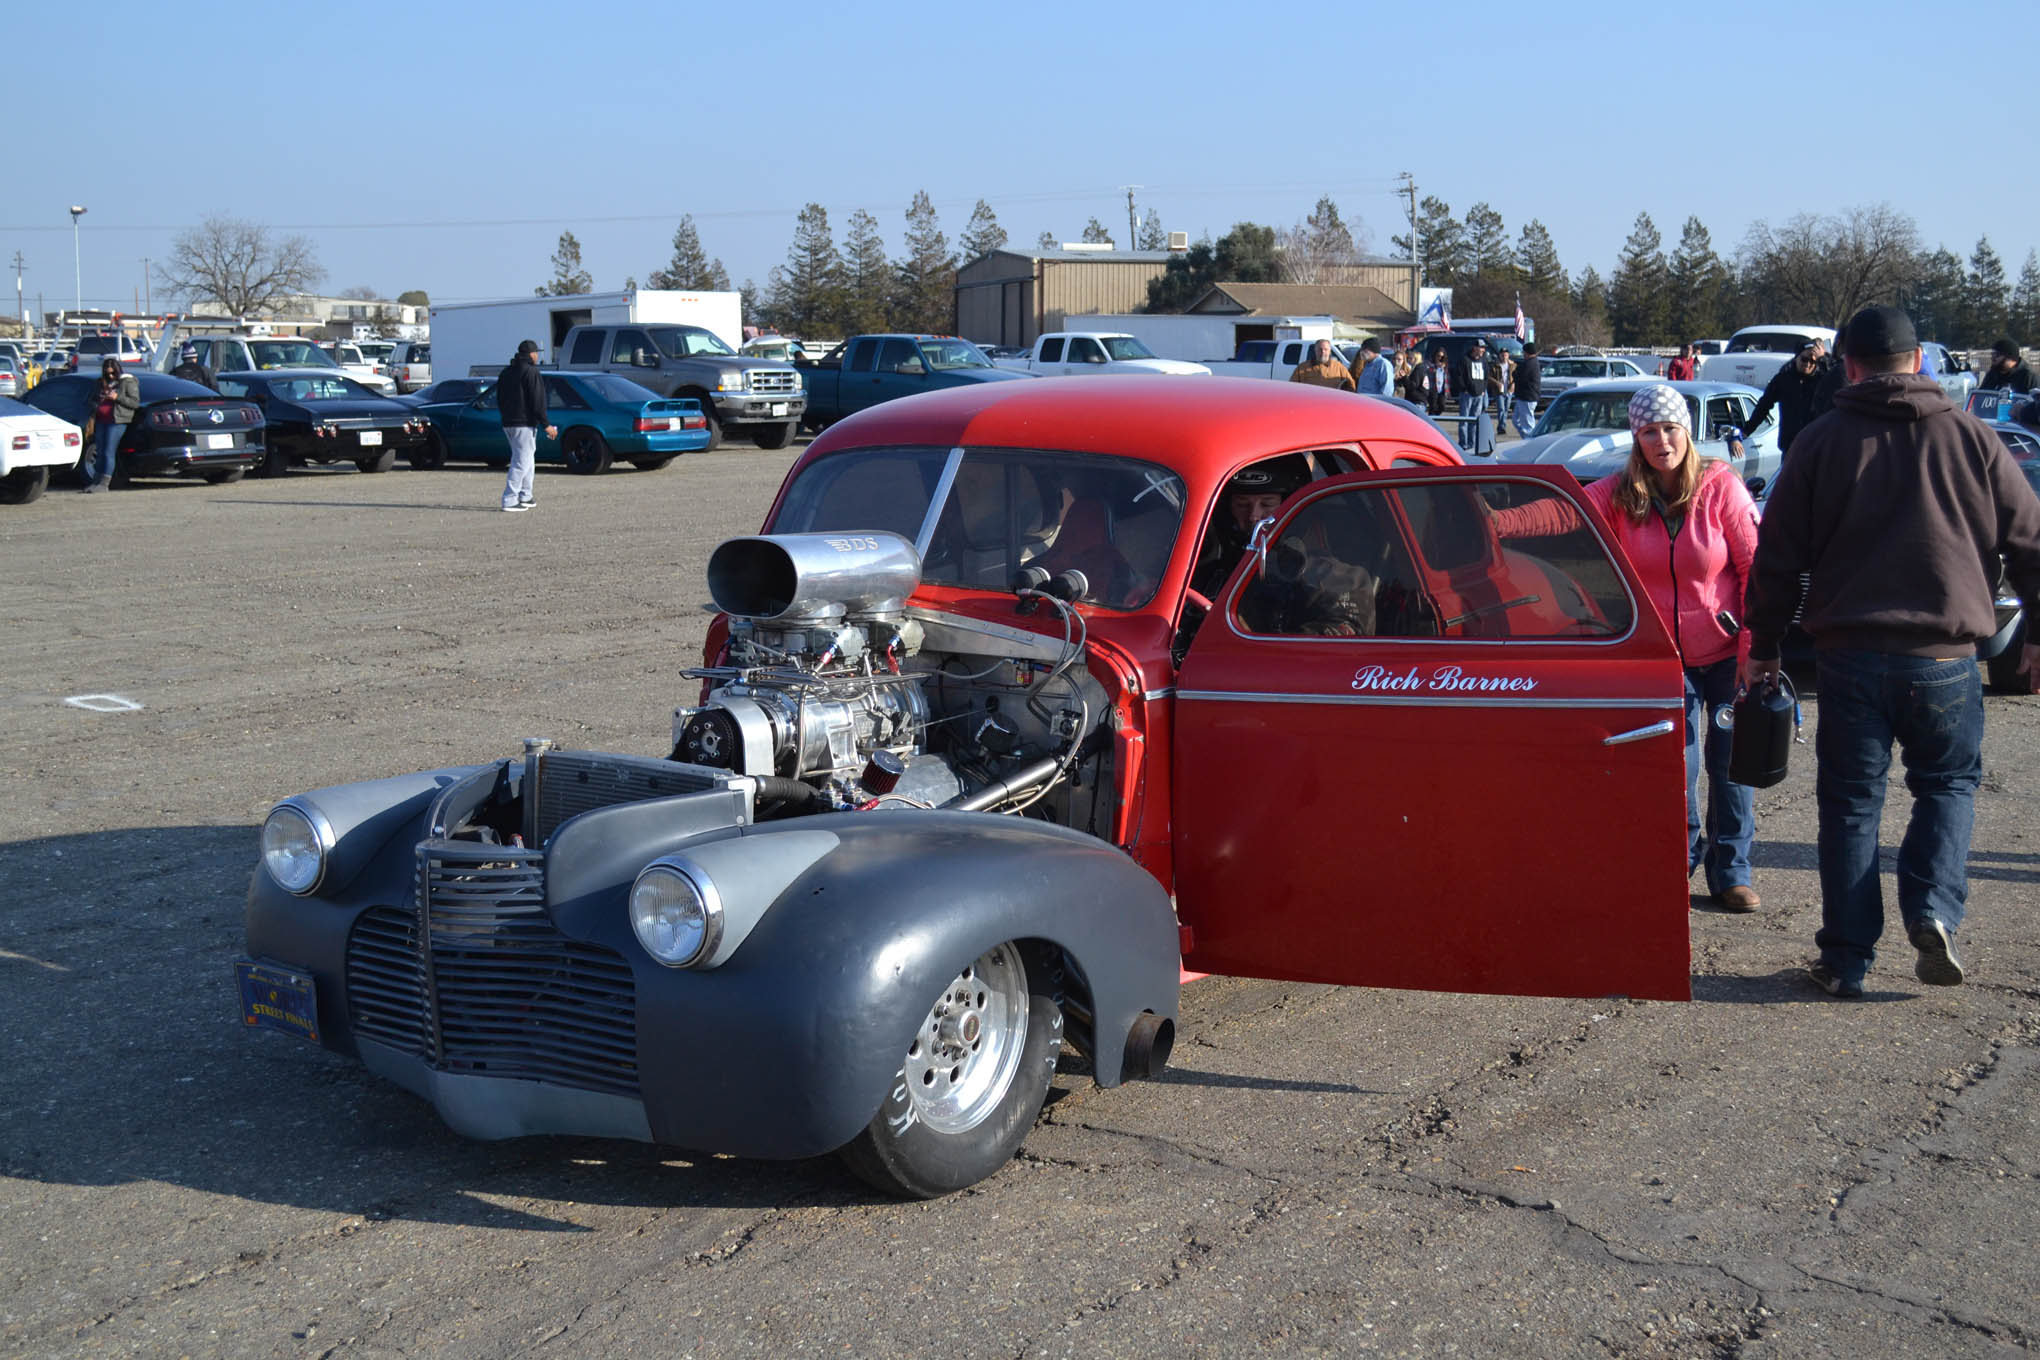 Later in the day, the 1940 Chevy of Rich Burns showed up to make some noise. Built in the 1980s, the coupe featured a 8-71 blown 515ci Donovan on gas, along with a 200hp plate nitrous system. Rich's 8-second coupe took a wild ride at the eighth-mile, where it crossed about three lanes before Rich pedaled it and got back in it.